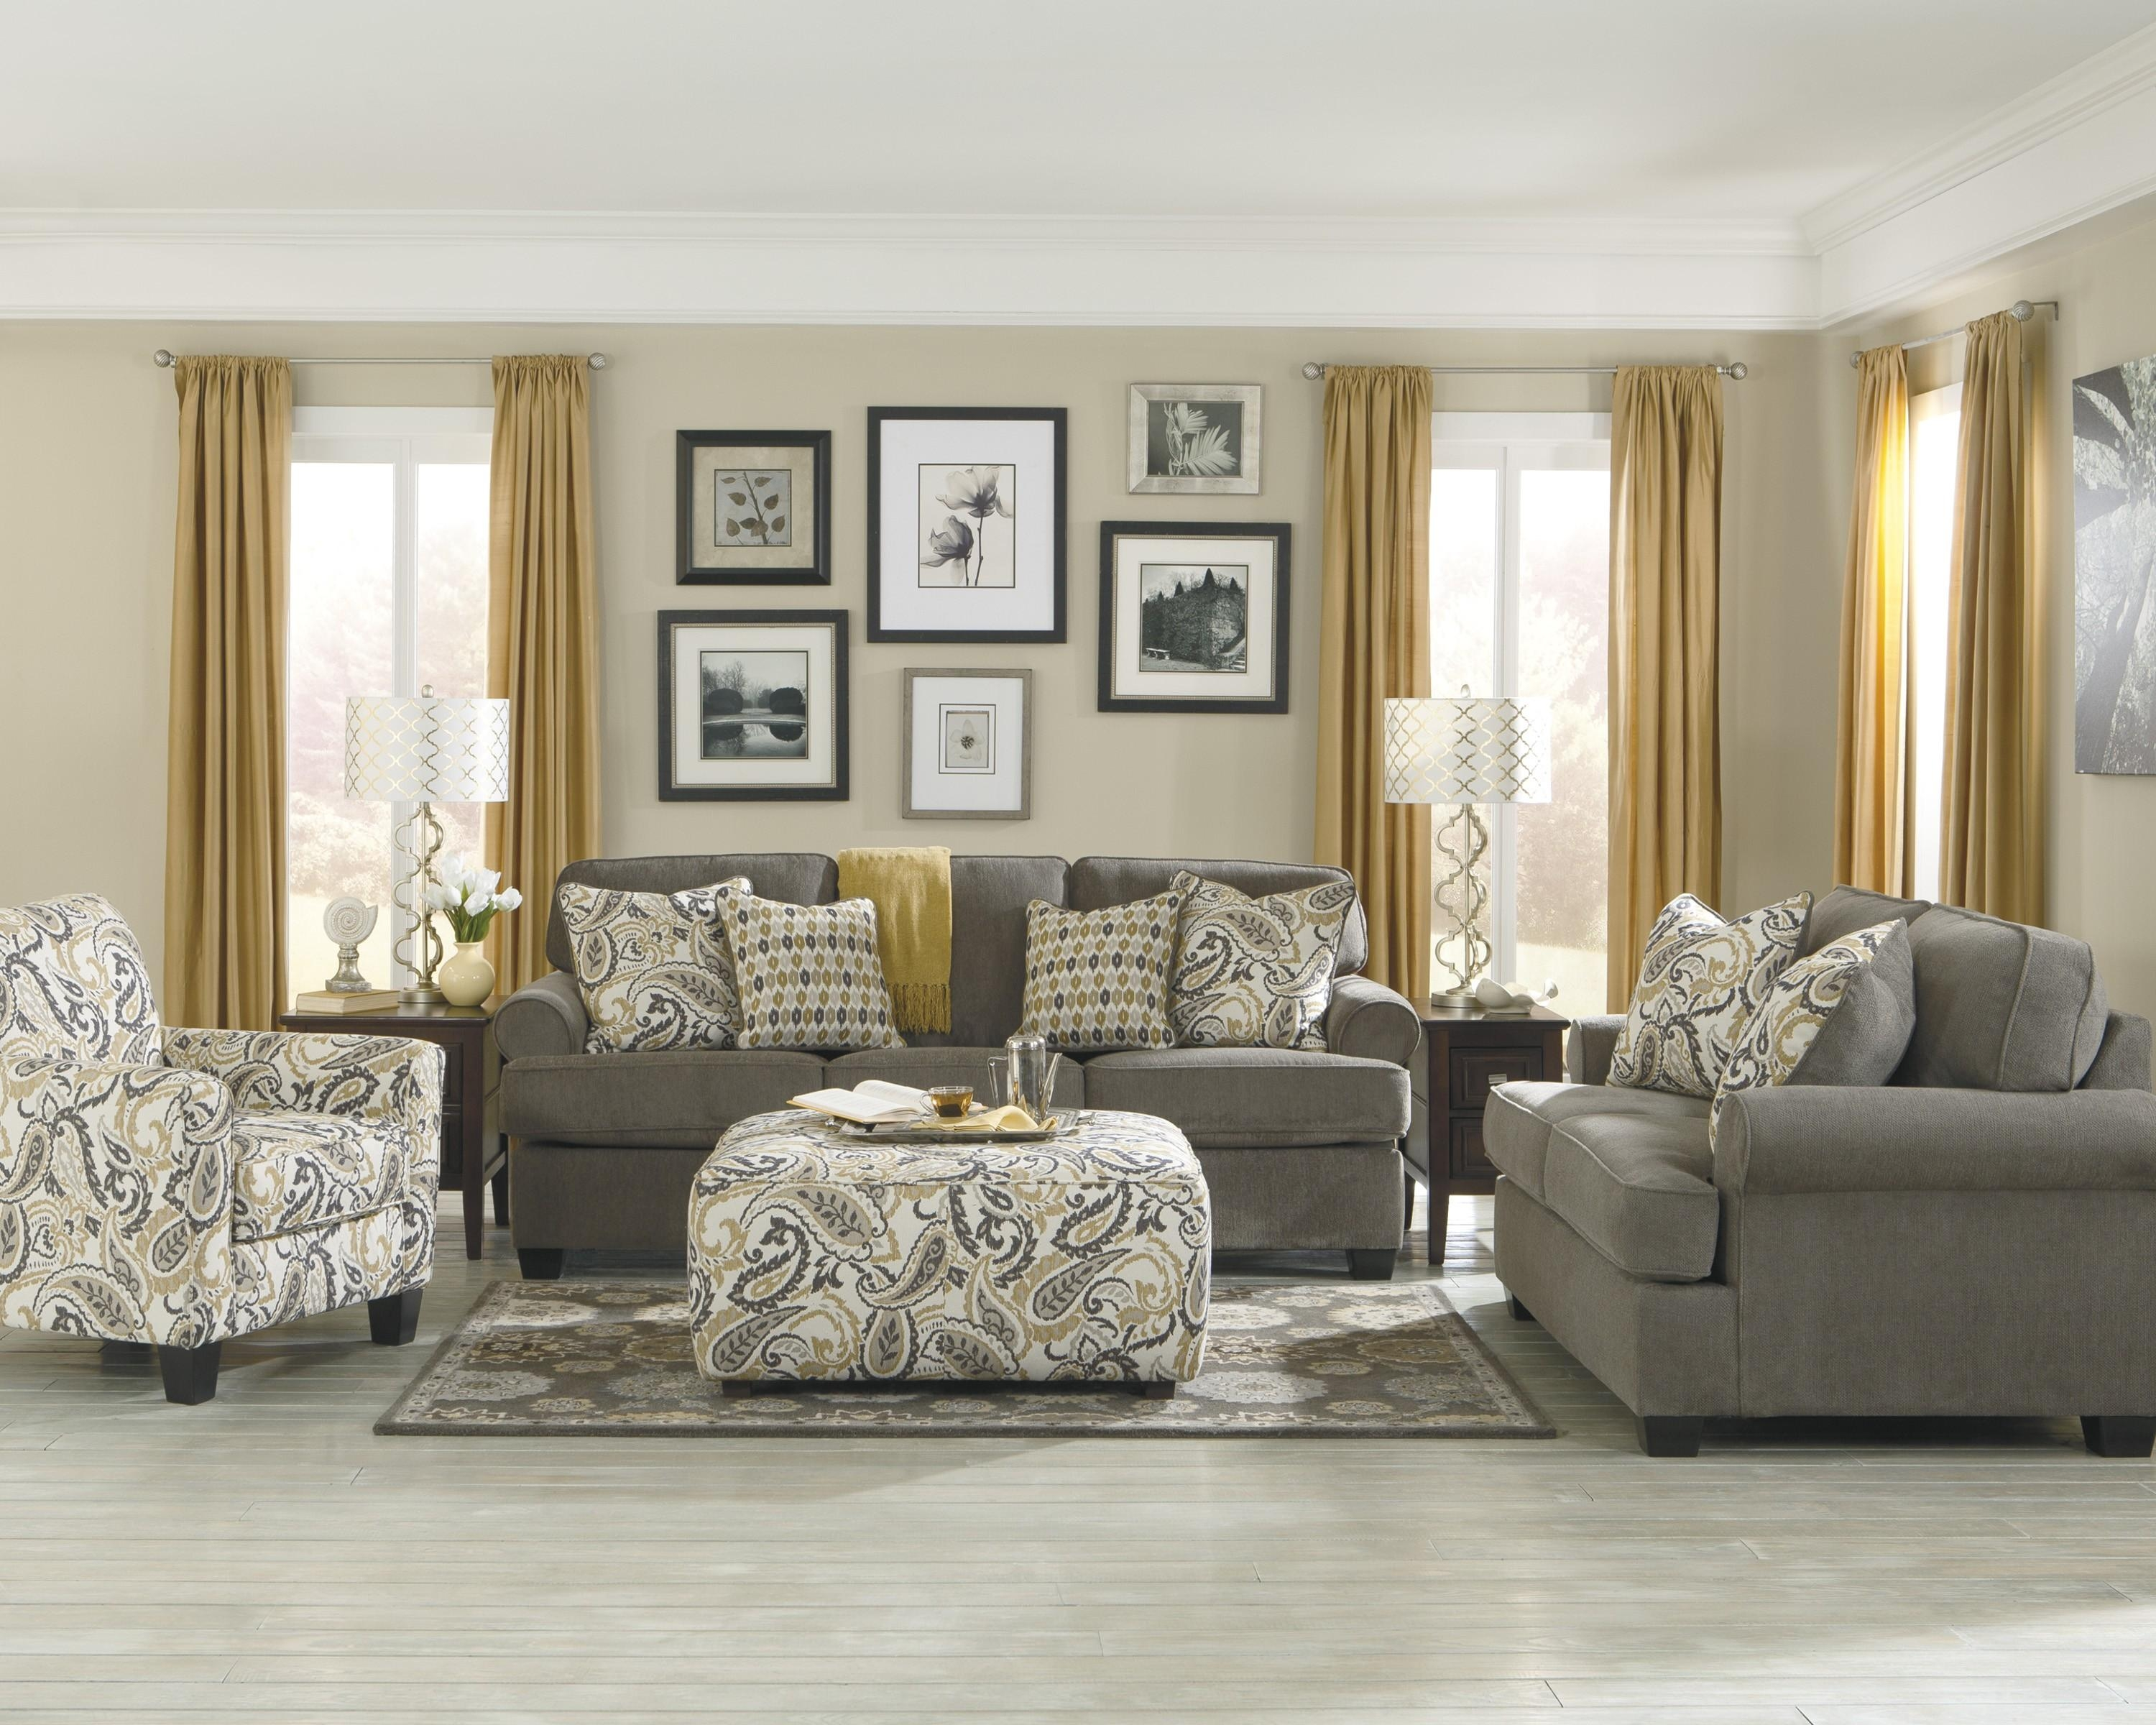 Living Room Inspiration Grey Sofa – Creditrestore For Gray Sofas For Living Room (Image 19 of 20)